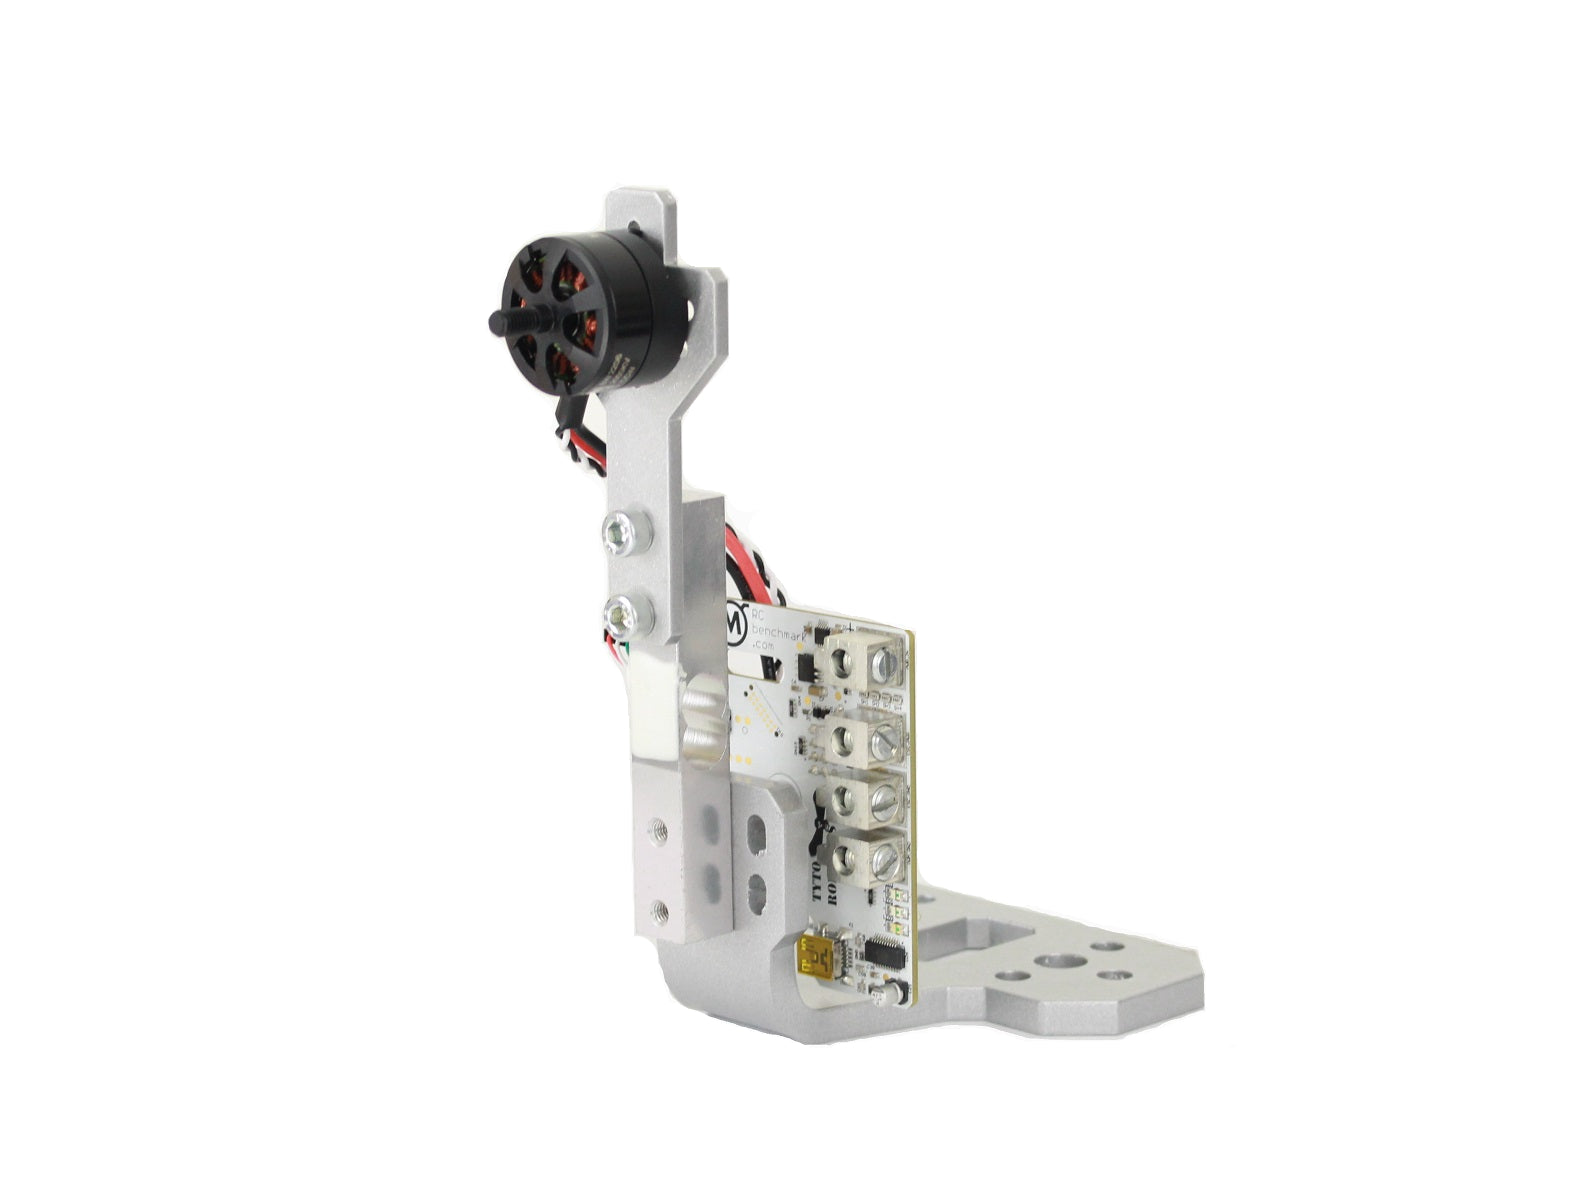 Series 1520 with brushless motor